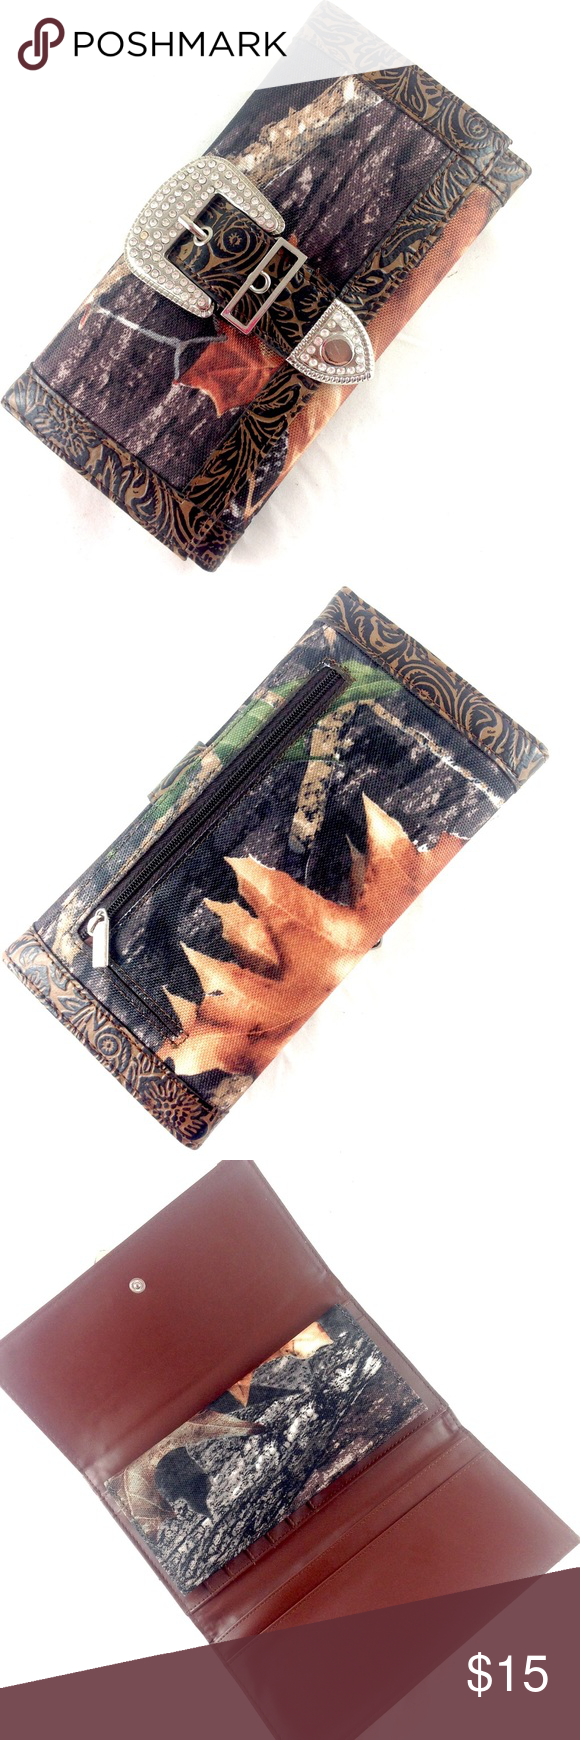 """✔️🆕 Camouflage Rhinestone Buckle Wallet NWOT New without tags. Boutique camo canvas wallet trimmed in tooled brown faux leather. Trifold. Decorative rhinestone buckle on front. Snap closure. Removable checkbook cover.  Places for cards, cash and coins.  8 X 4 X 1"""".                  🔹Please ask all questions before you purchase! I'm happy to help! 🔹Sorry, no trades or holds 🔹Please, no lowball offers 🔹Please use Offer Button! 🔹Bundle for best prices! Boutique Bags Wallets"""